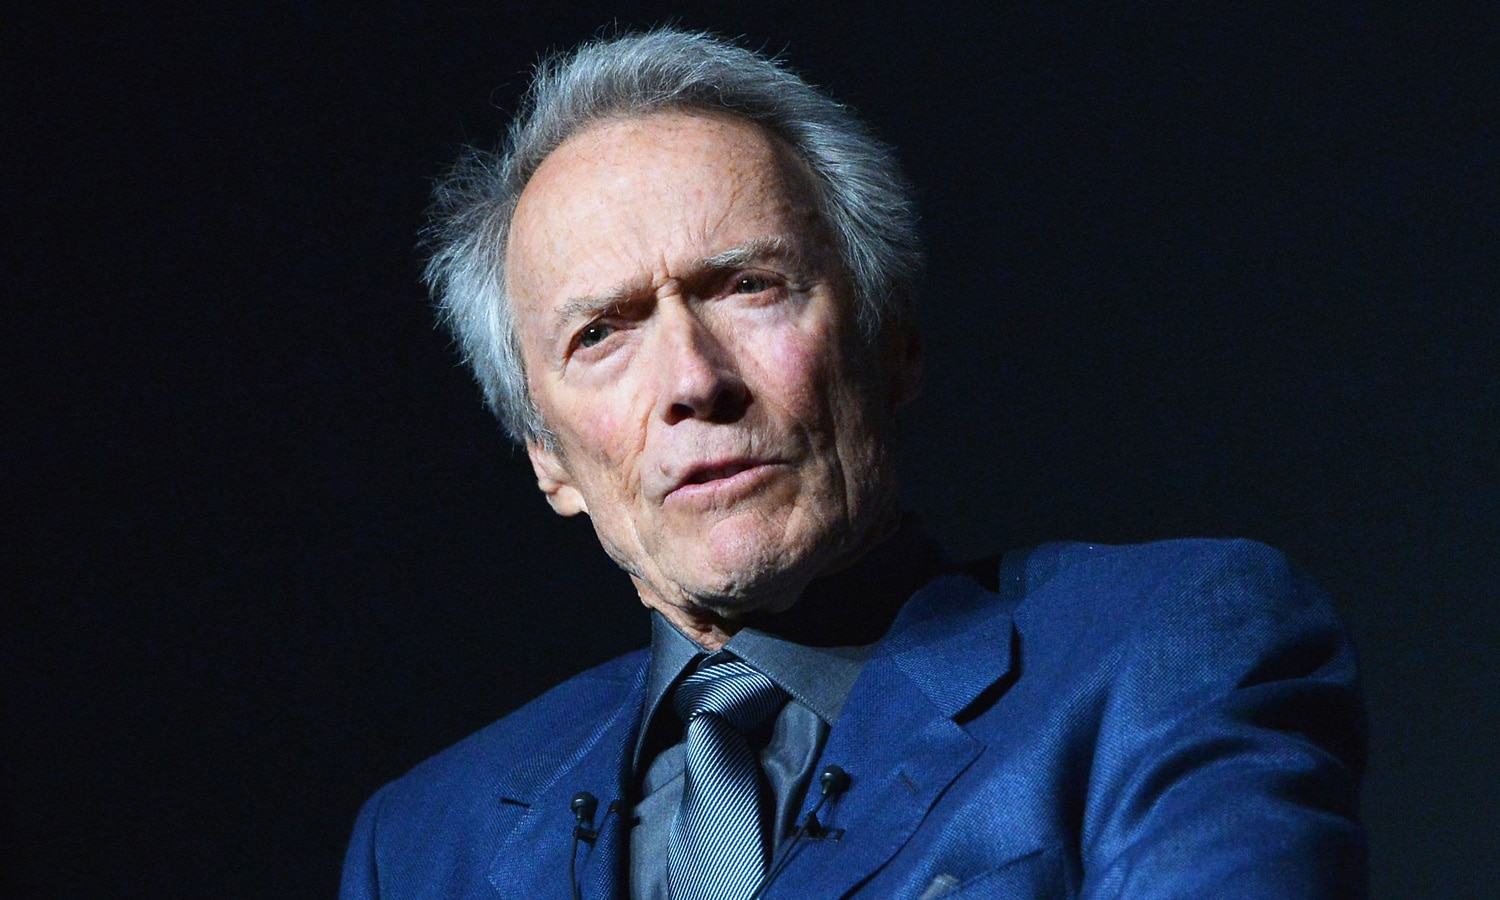 Clint Eastwood Confirms He's Not Quitting Movies To Sell Cannabis